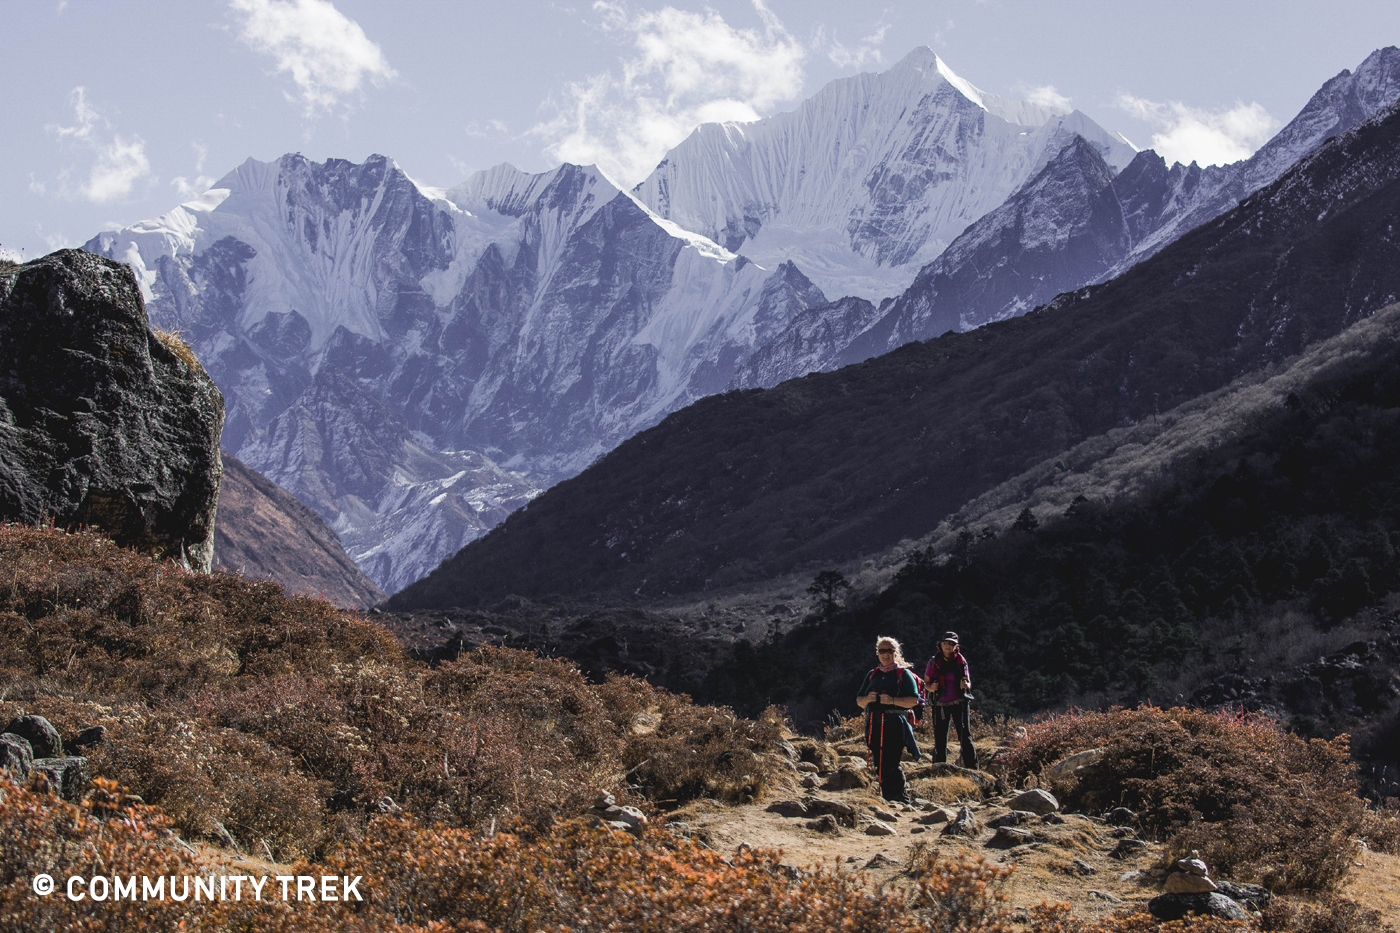 Langtang Valley and surrounding Mountains.